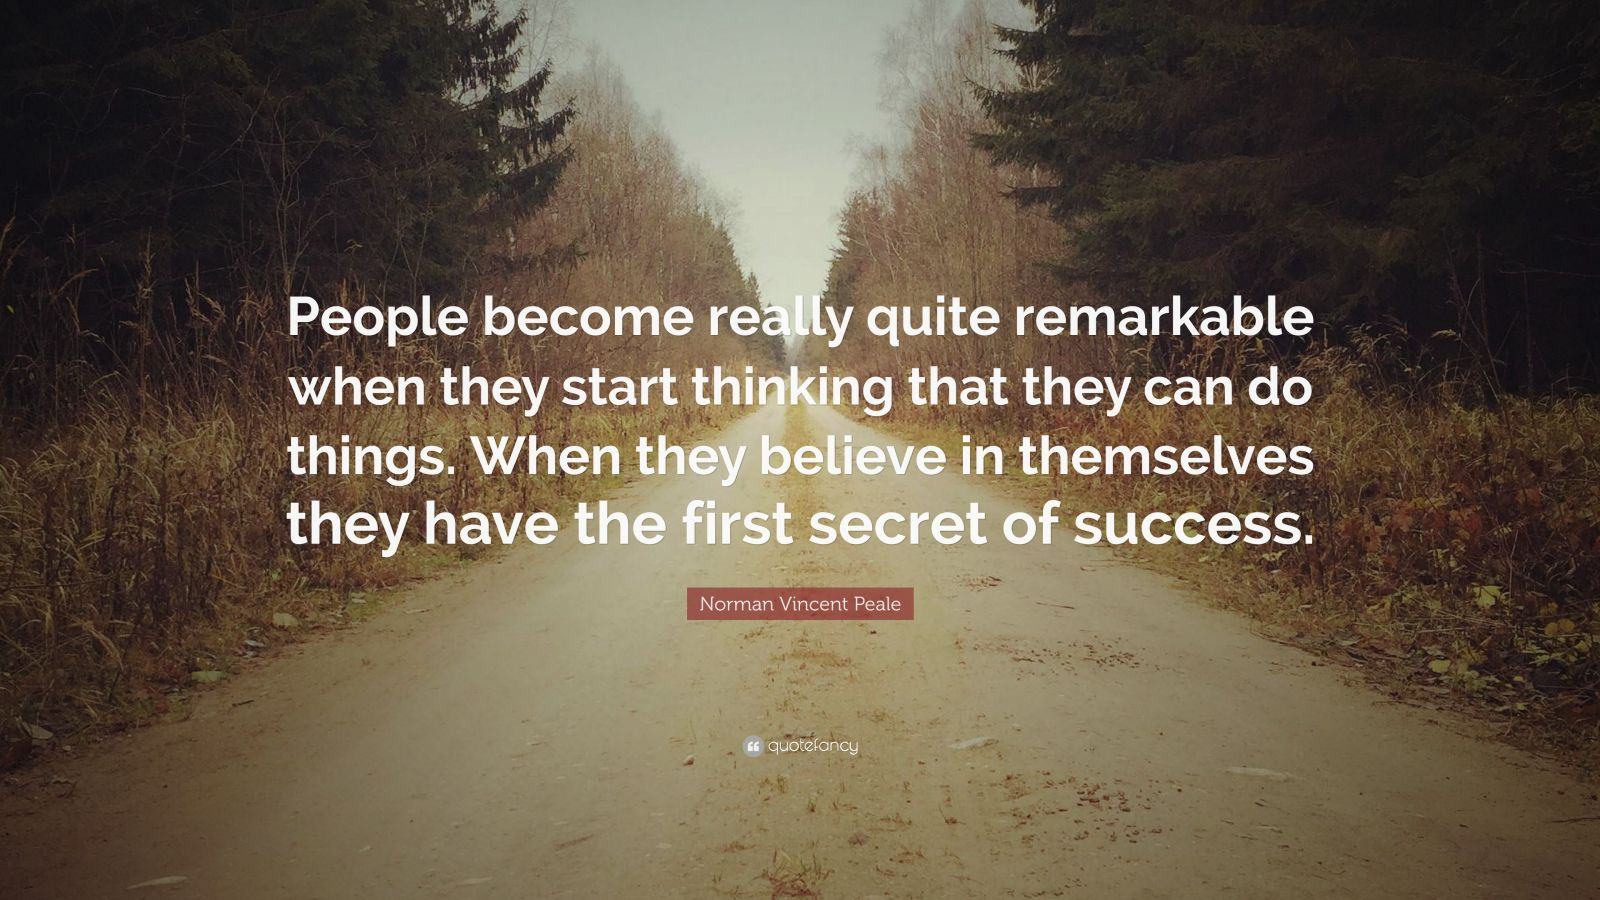 beliefs of remarkably successful people essay The most successful people in business approach their work differently than most see how they think--and why it worksgetty 22kinsharei'm fortunate enough to know a number of remarkably successful people.